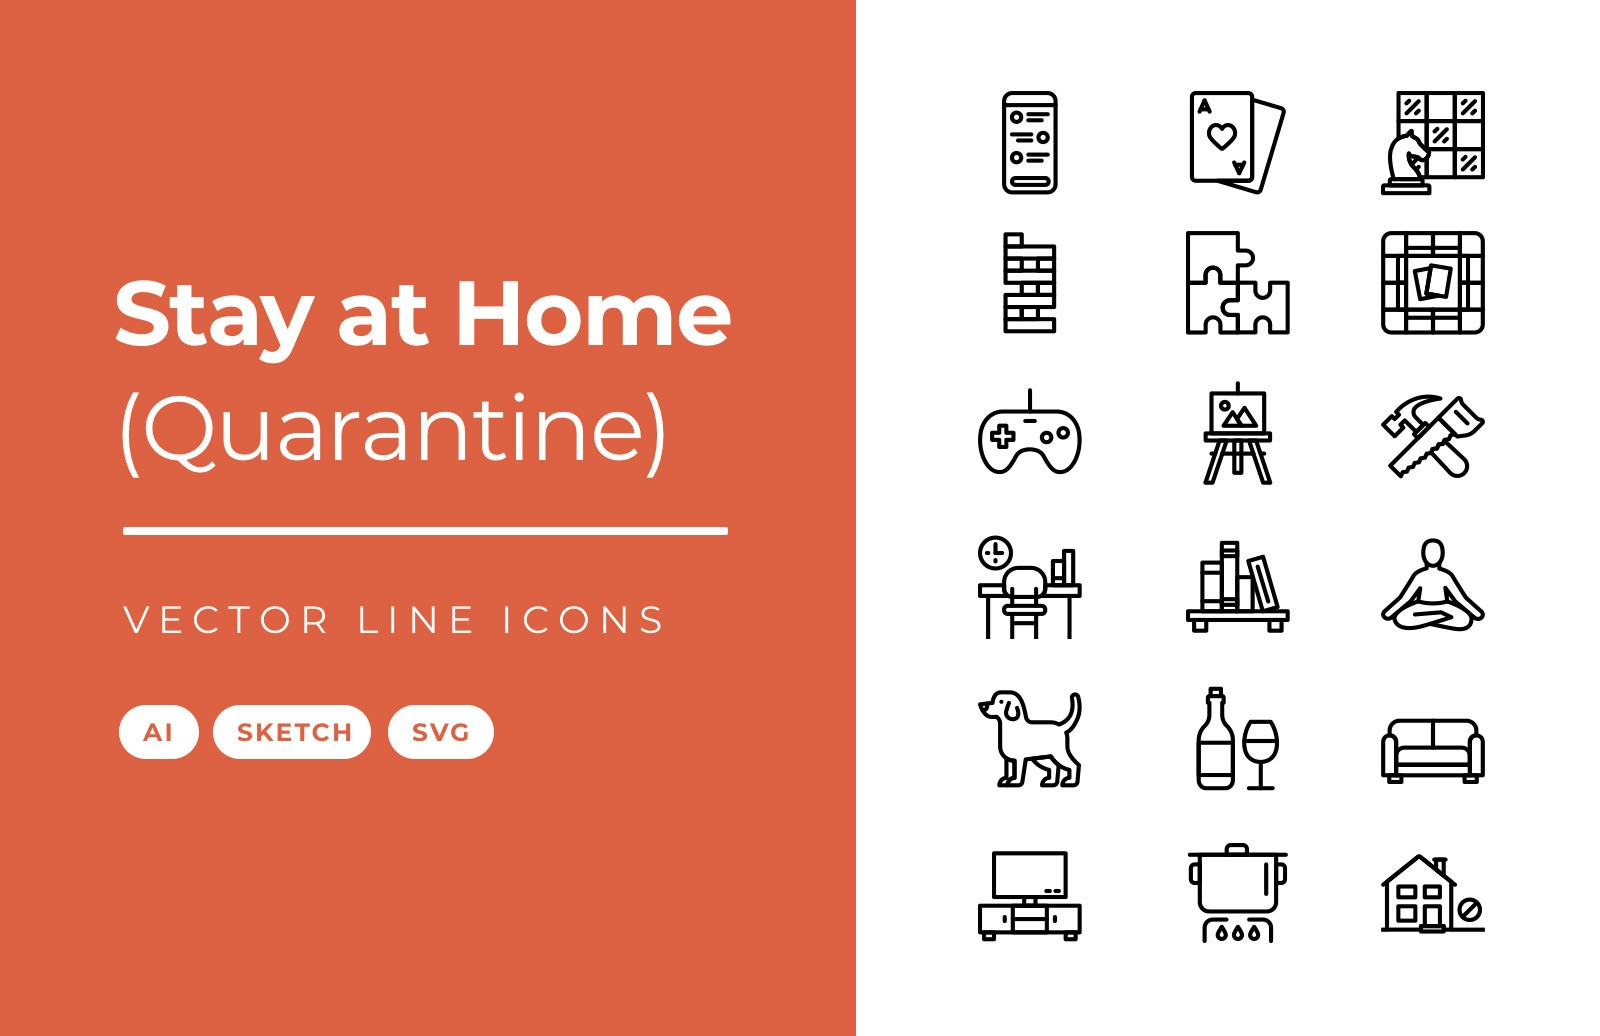 Stay At Home Vector Line Icons Preview 1A